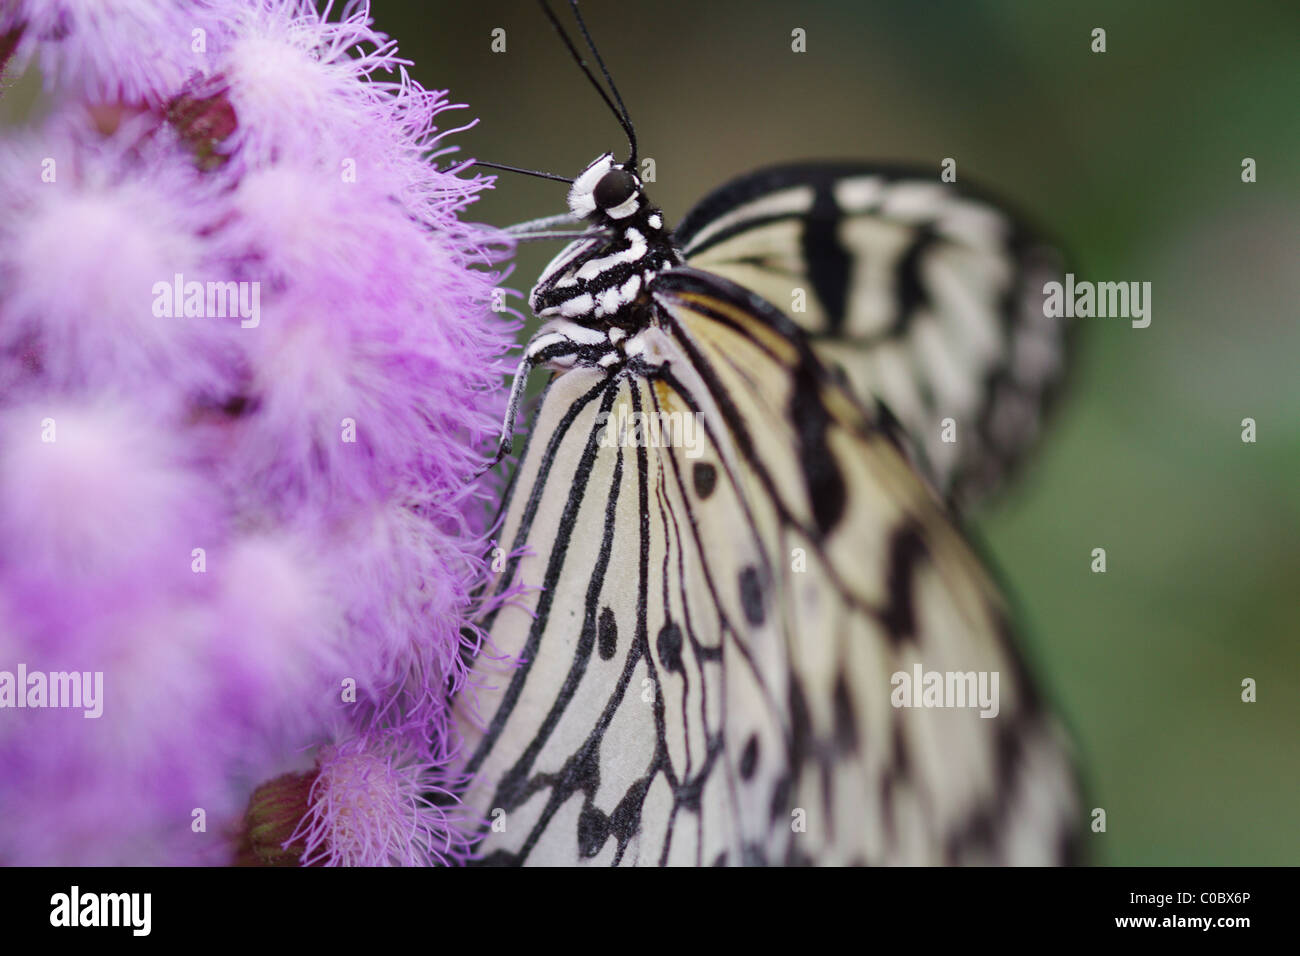 Idea Leuconoe Butterfly South Asia - Stock Image